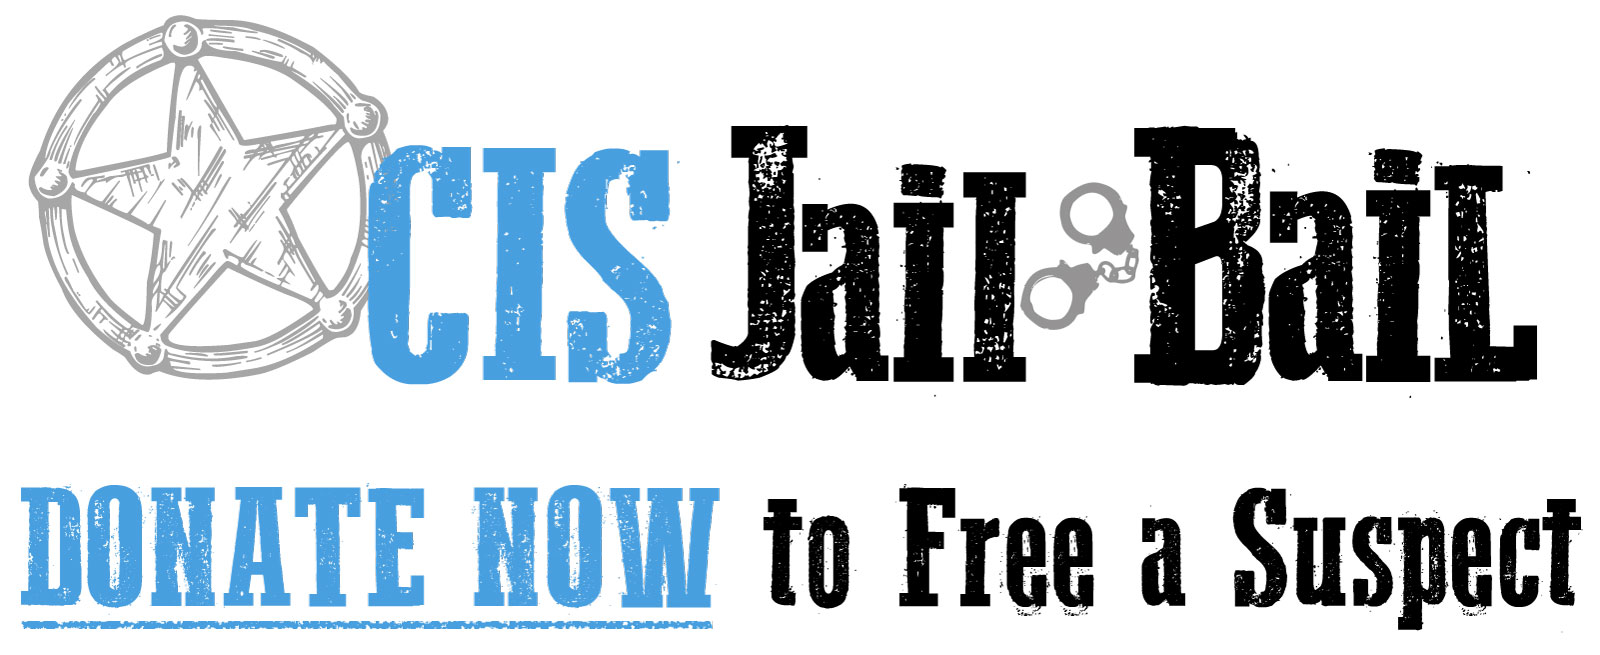 CISMCC Jail and Bail Donate Now